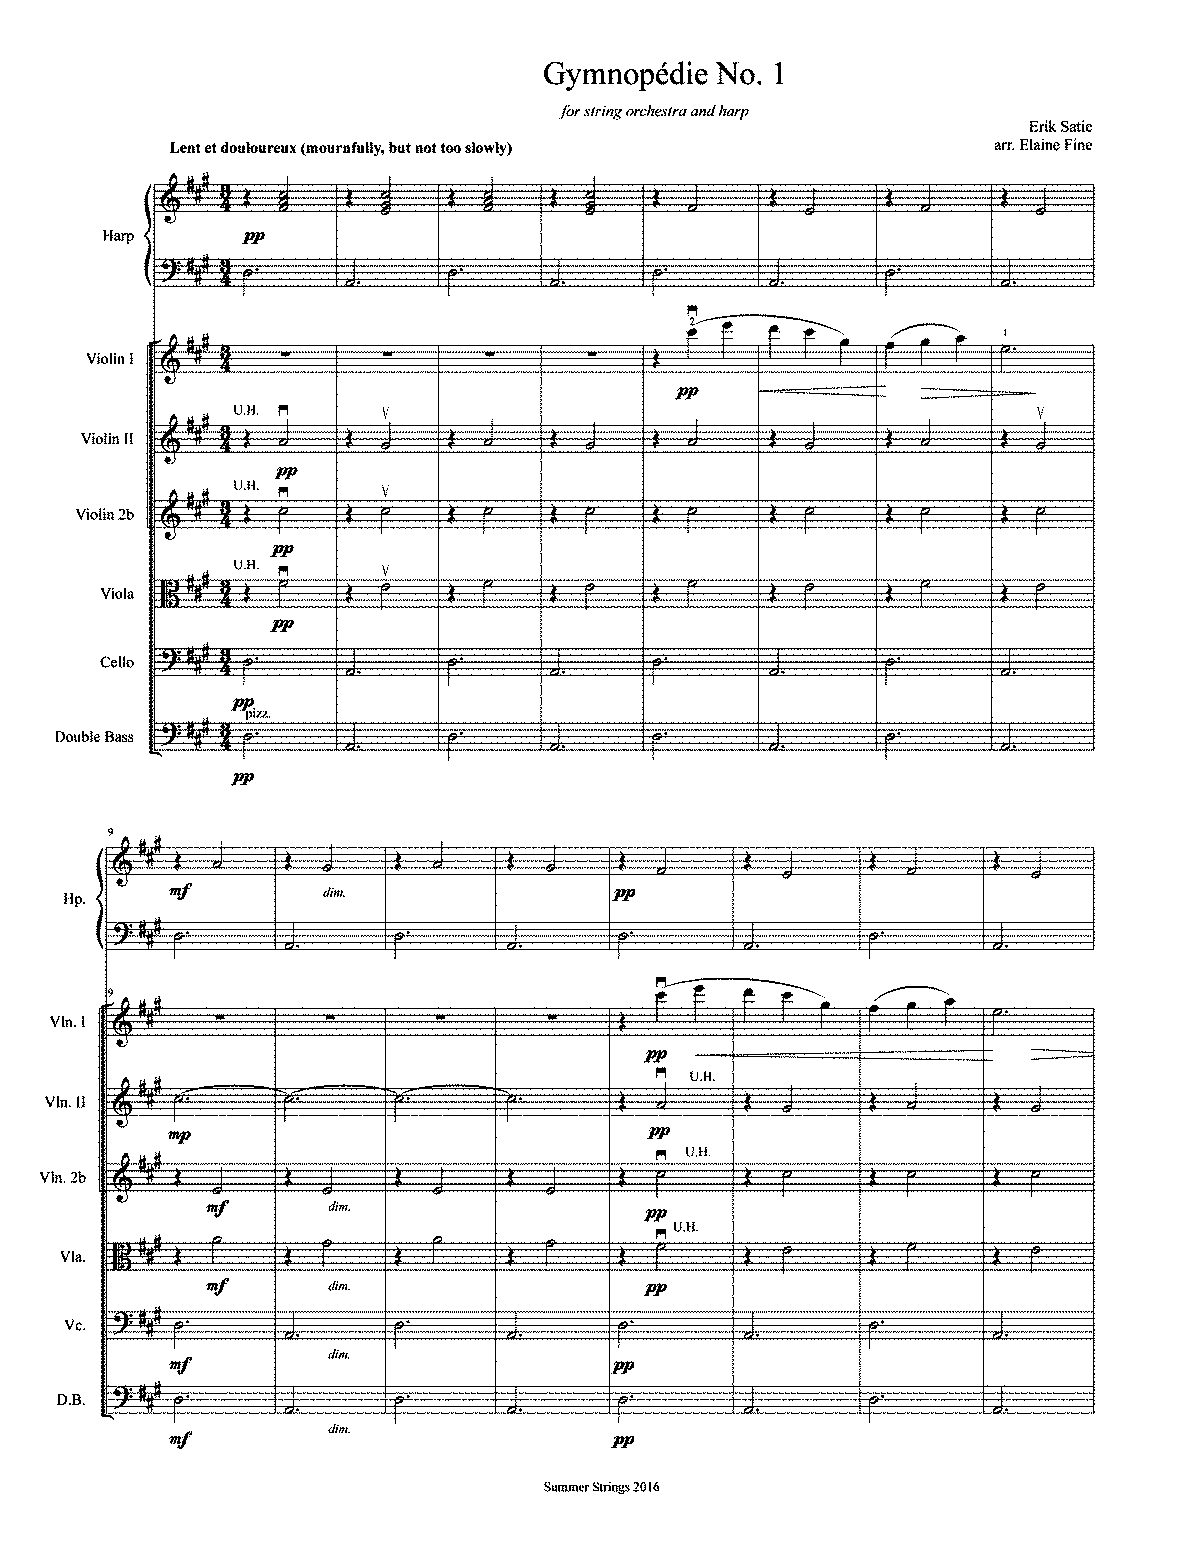 PMLP04215-Gymnopedie Number 1 for Strings and Harp Score and Parts.pdf